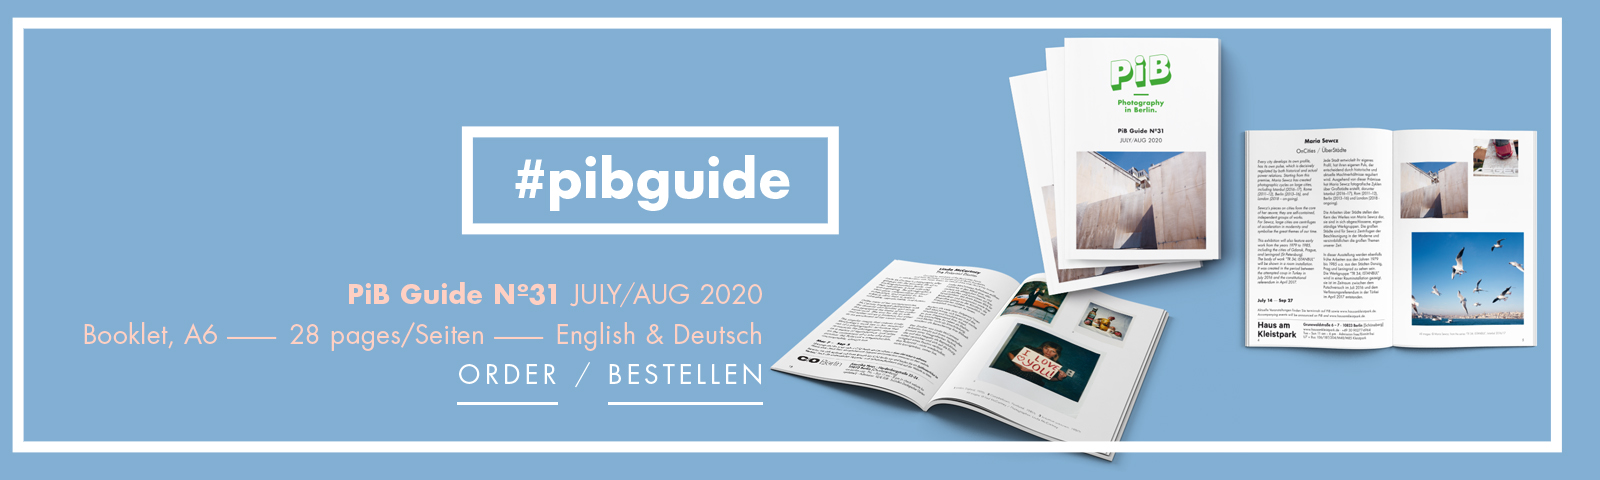 "PiB Guide Nº31 JULY/AUG 2020 © PiB – Photography In Berlin. #pibguide. Booklet, A6 Format · 28 Pages · English & German · Worldwide Shipping +++ COVER PHOTO: From The Series ""TR 34; ISTANBUL"", Istanbul 2016/17 © Maria Sewcz. Solo Exhibition »OnCities / ÜberStädte« At Haus Am Kleistpark In Berlin-Schöneberg. +++ Editor / V.i.S.d.P.: Julia Schiller +++ Art Direction By Julia Schiller · Ele Studio Berlin · Www.ele-studio.de +++ Printed In Berlin-Köpenick By Altmann-druck GmbH · Www.altmann-druck.de"